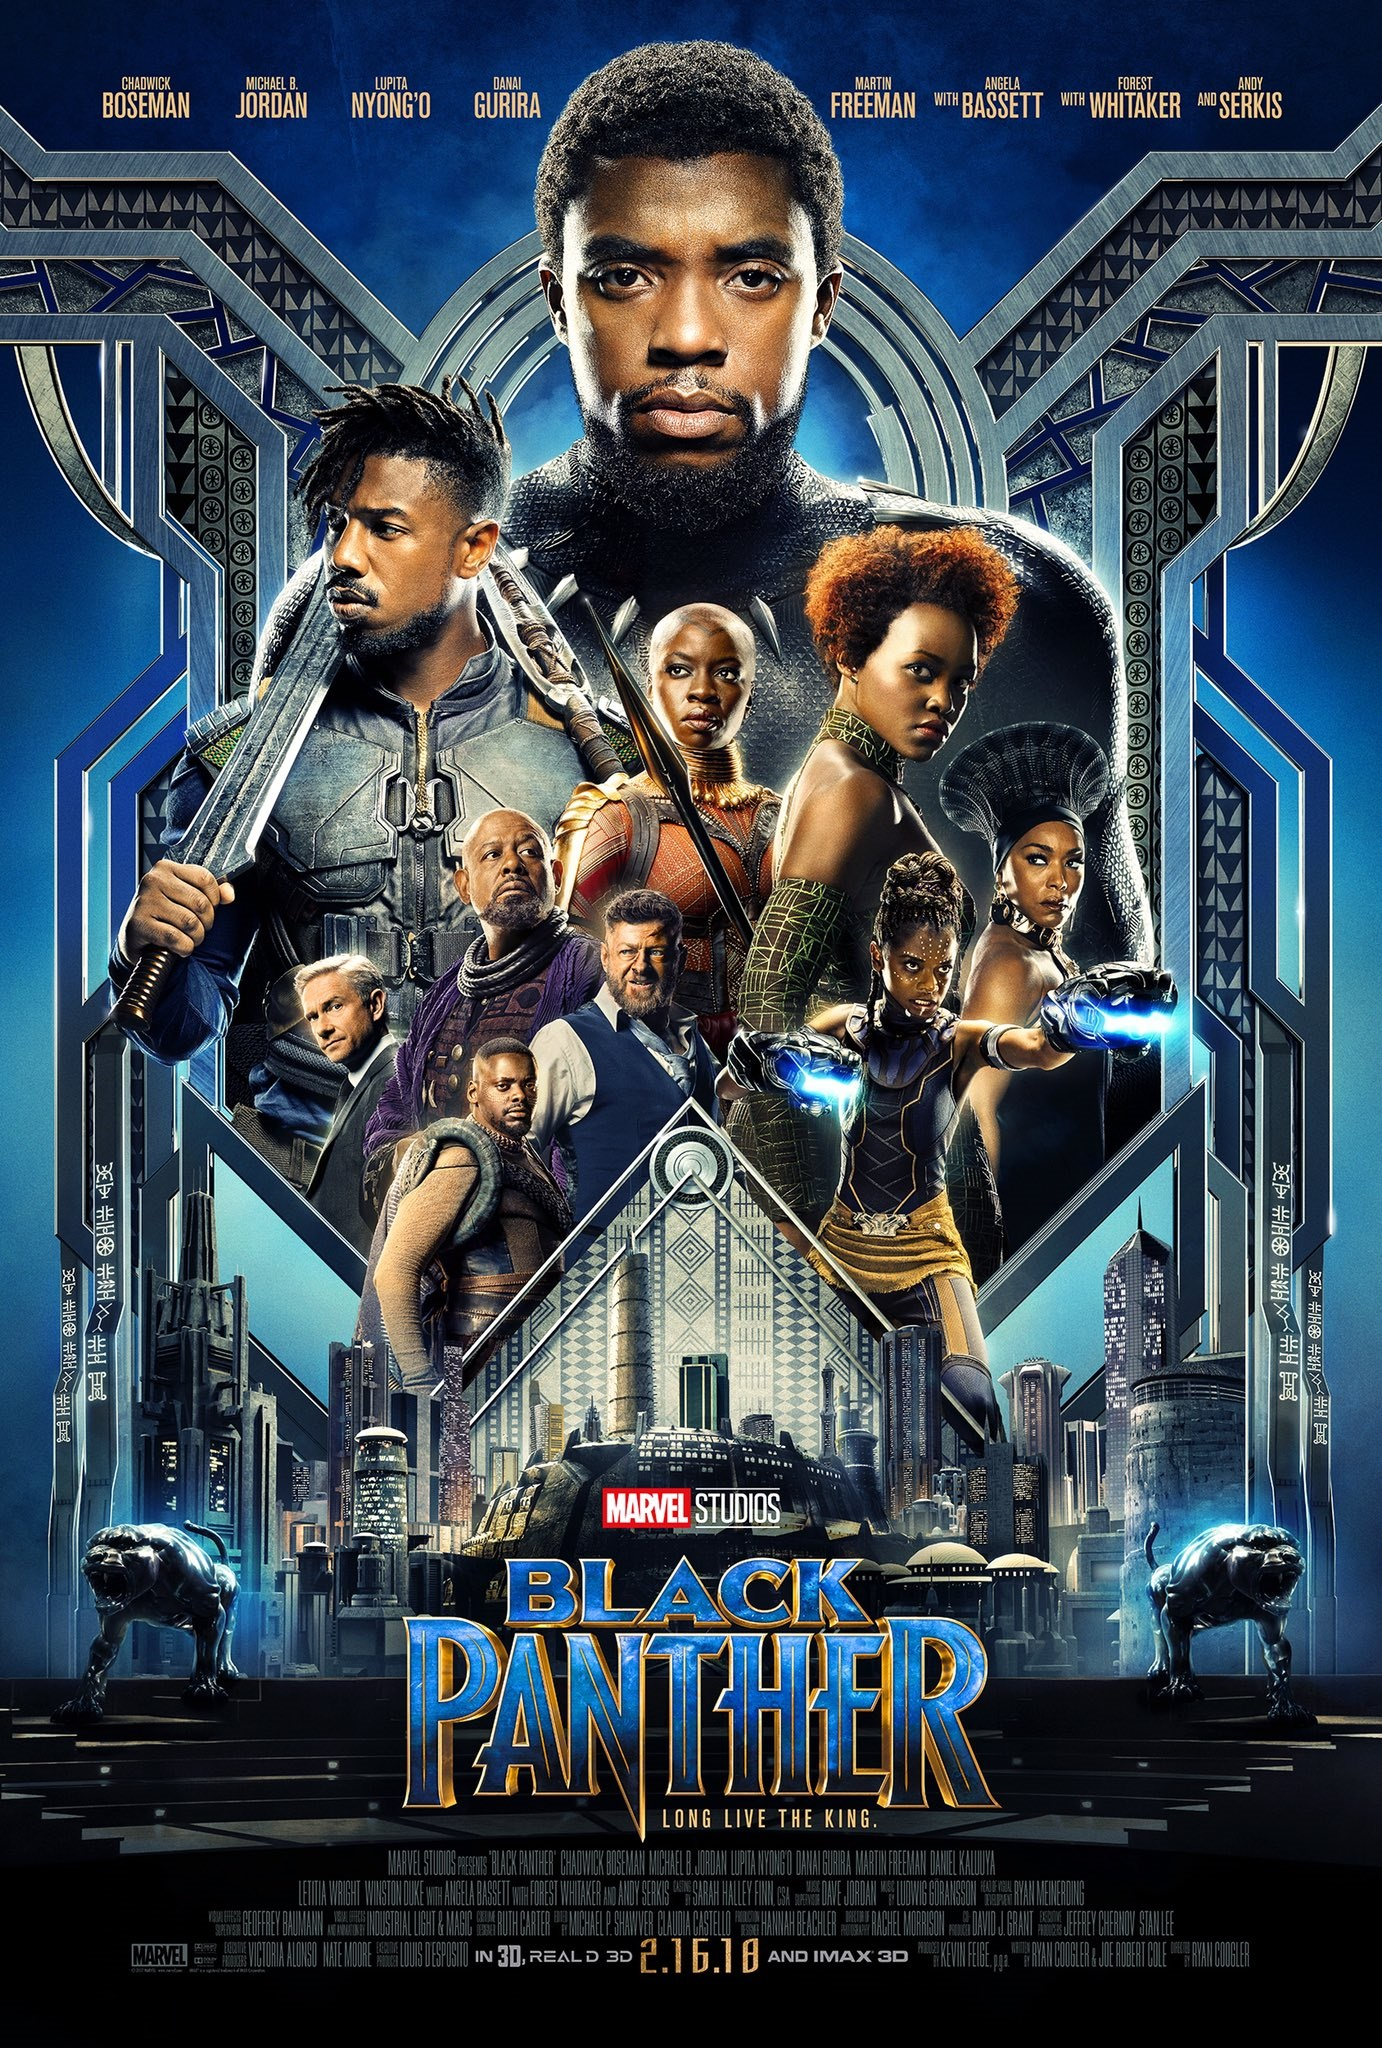 The new Black Panther poster